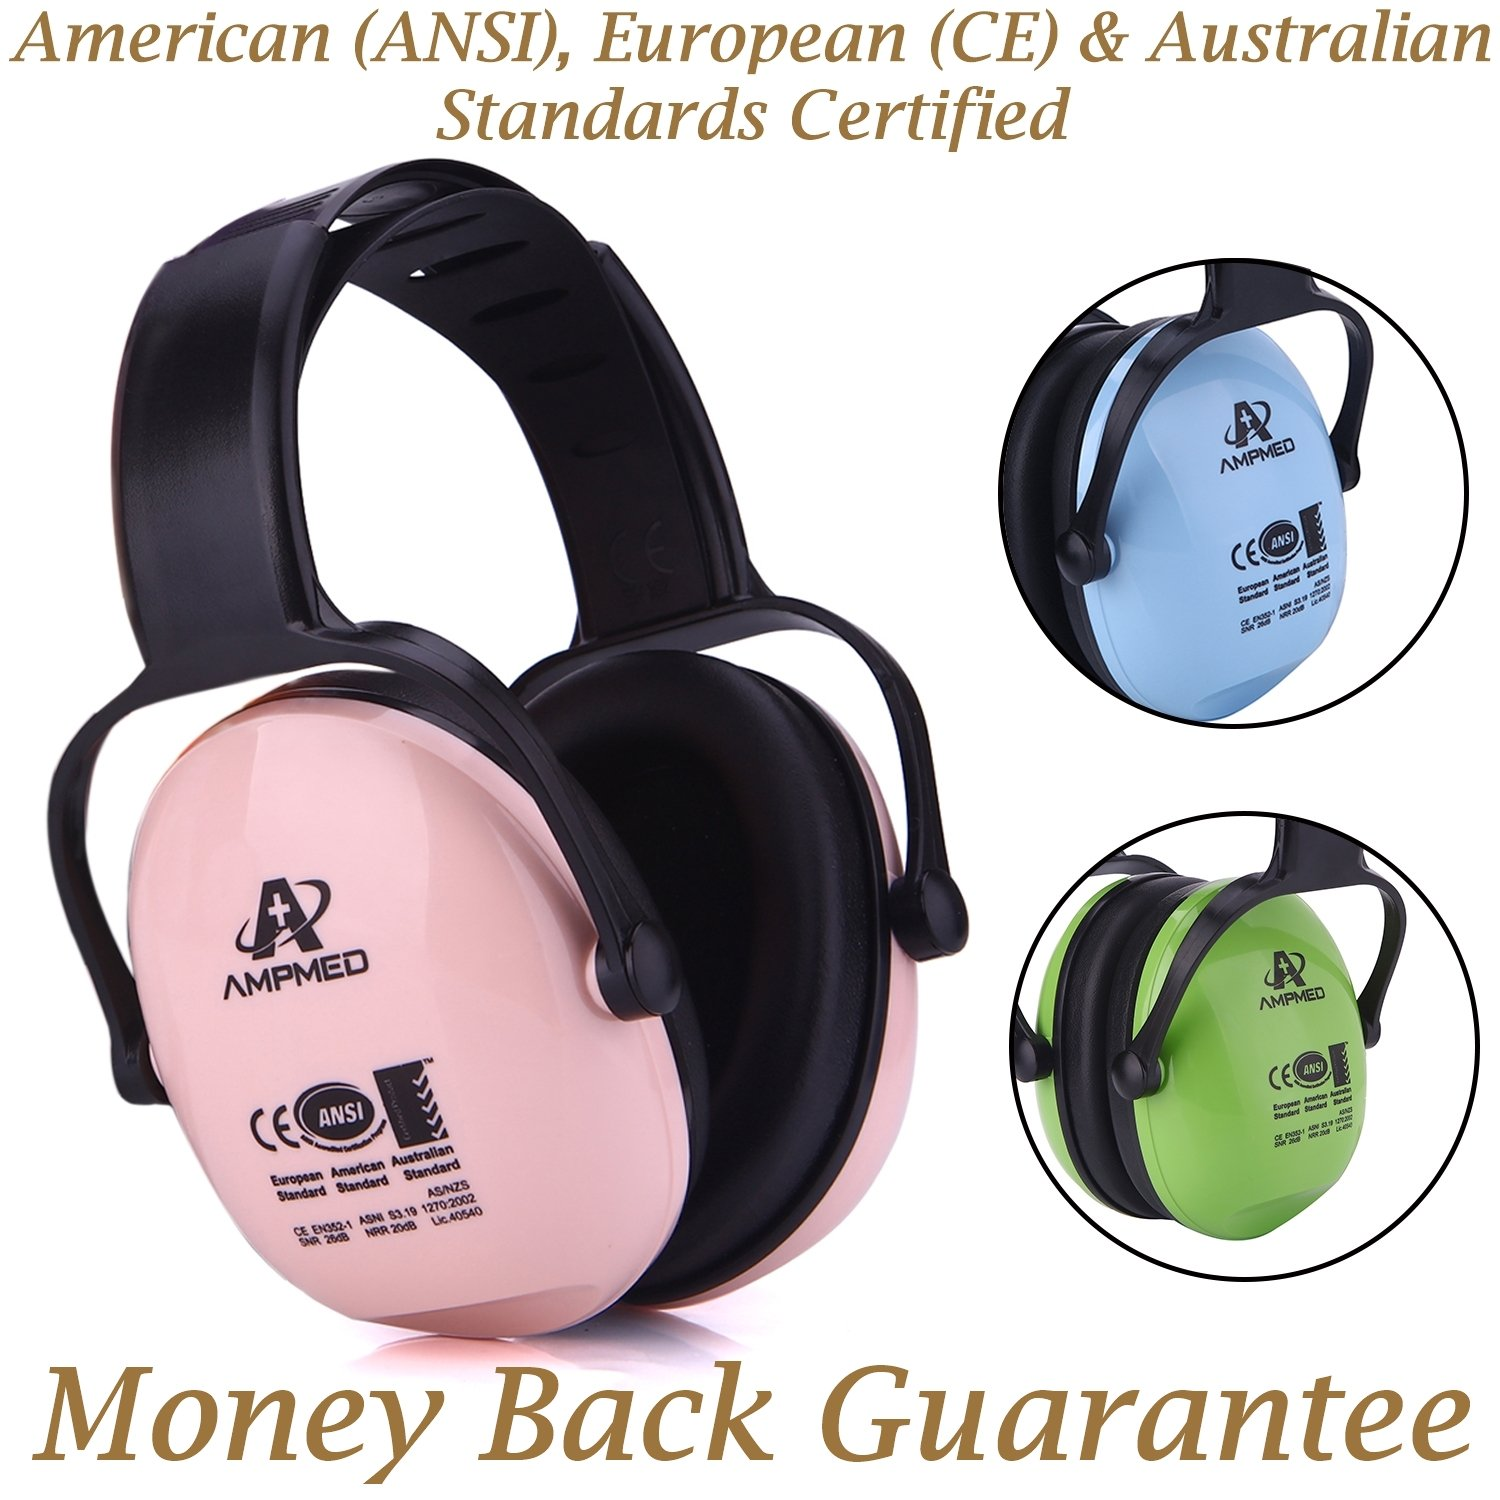 Earmuffs for Kids : Amplimなノイズ削減パッシブベビーヘッドフォン/耳マフfor Infants幼児、& Teens。子サウンドHearing Protection at &スポーツイベントコンサート。新しい8月2017 ピンク Toddler Ear Muff Pink B074W8C6S6 Rose Quartz / Pale Pink